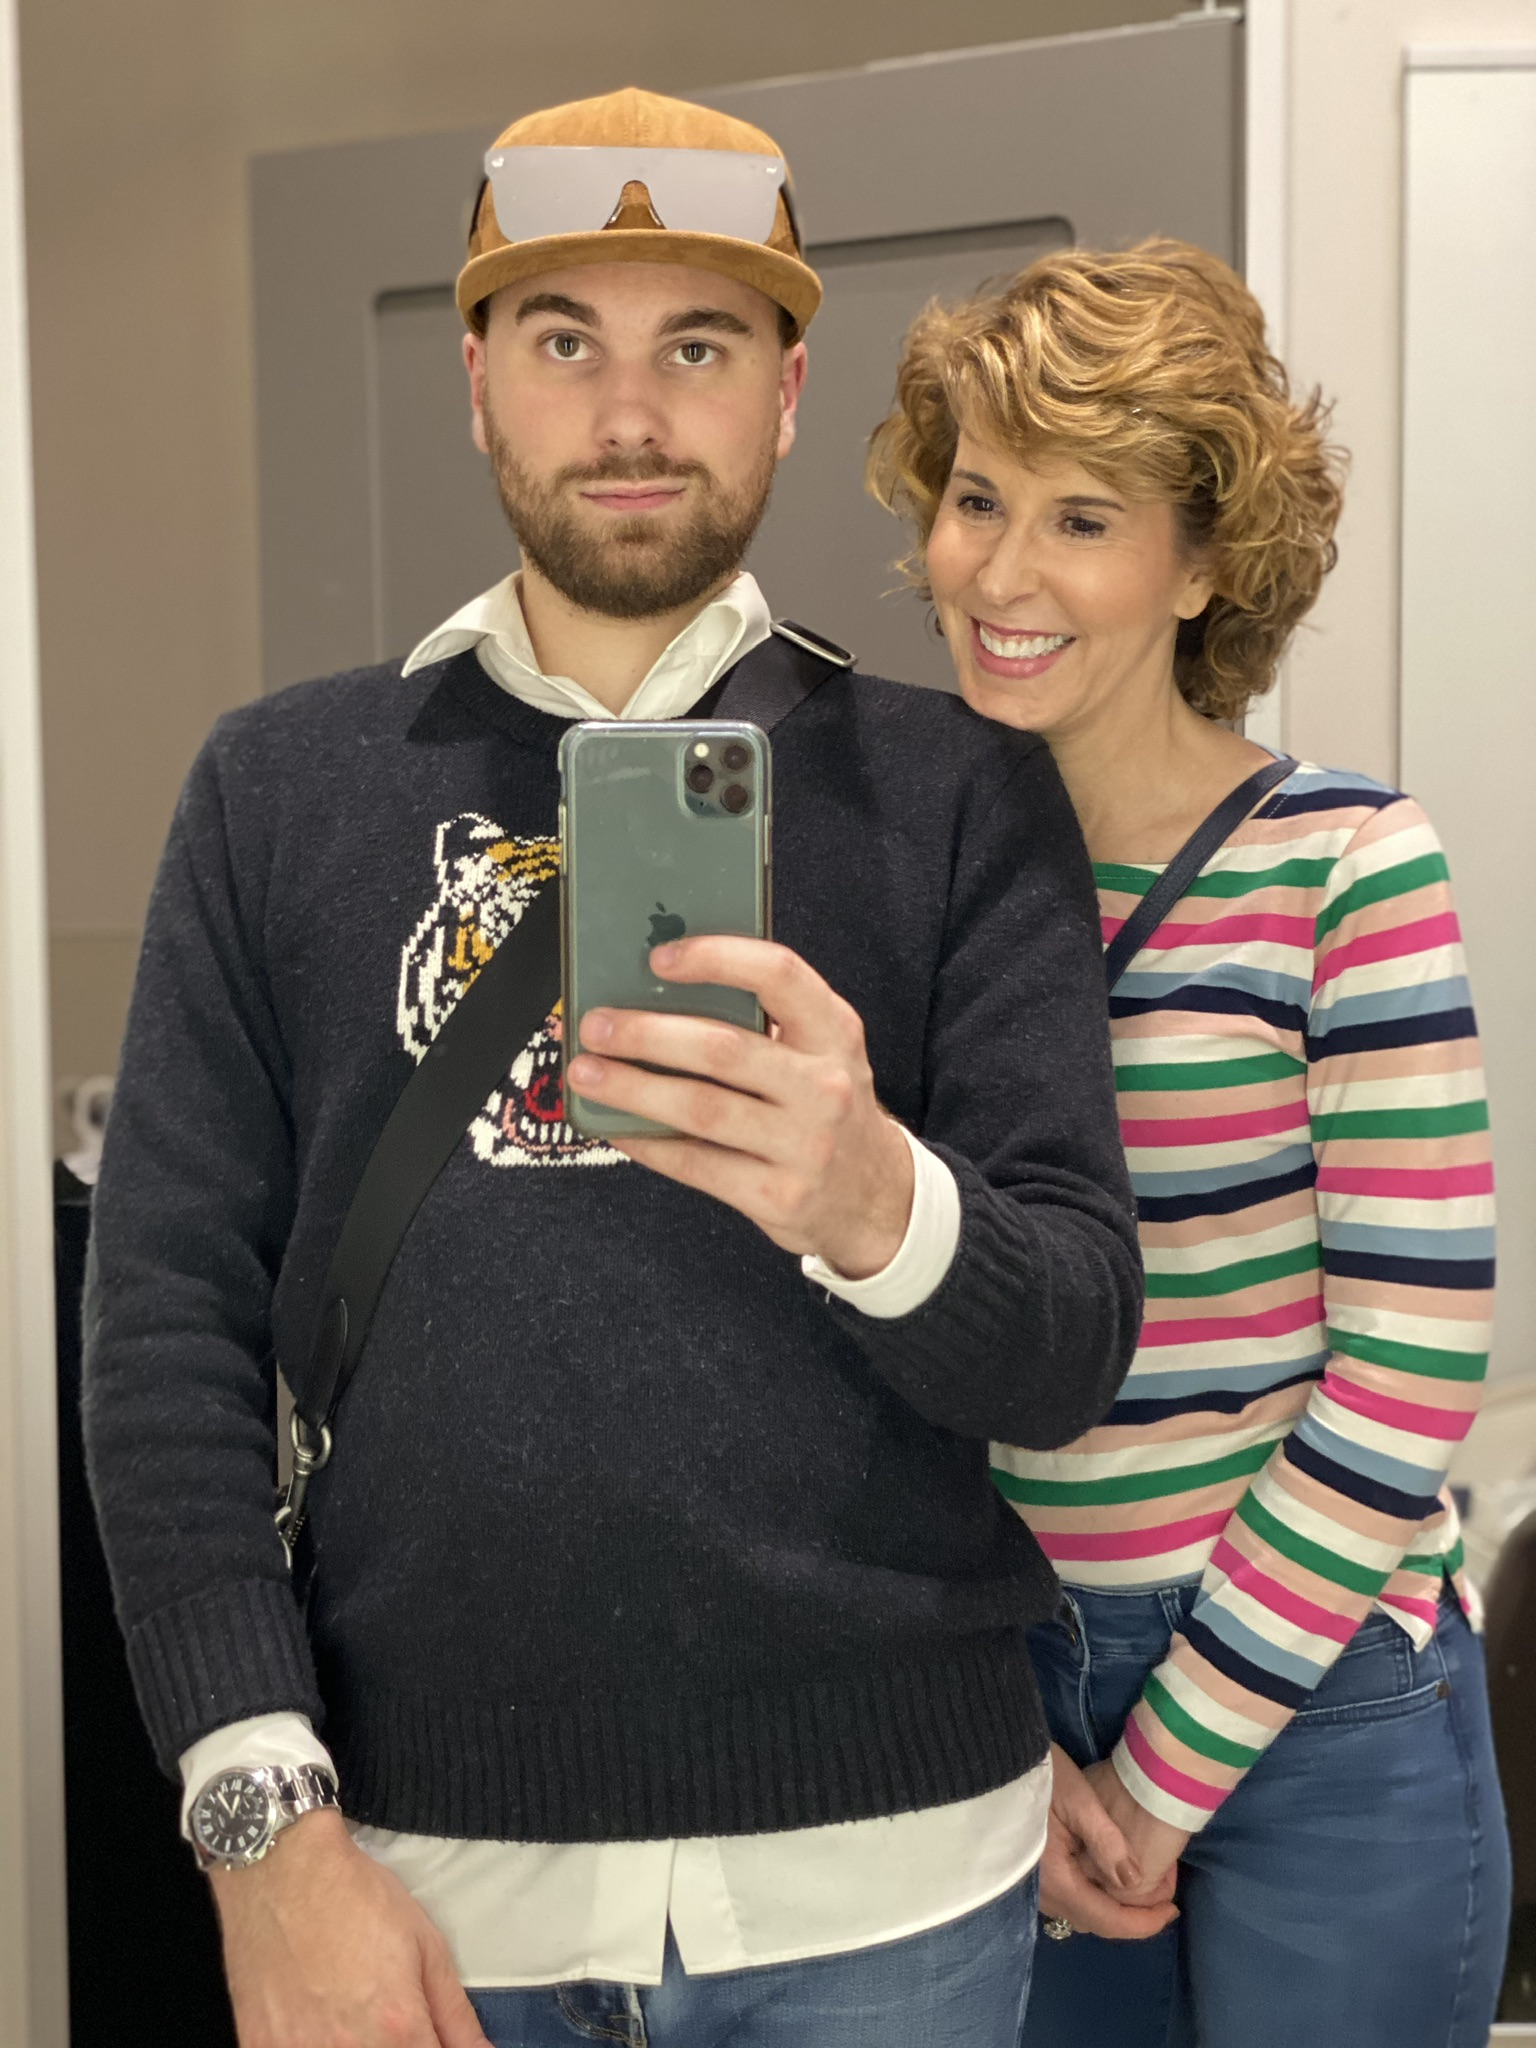 man with beard and woman in striped shirt taking mirror selfie